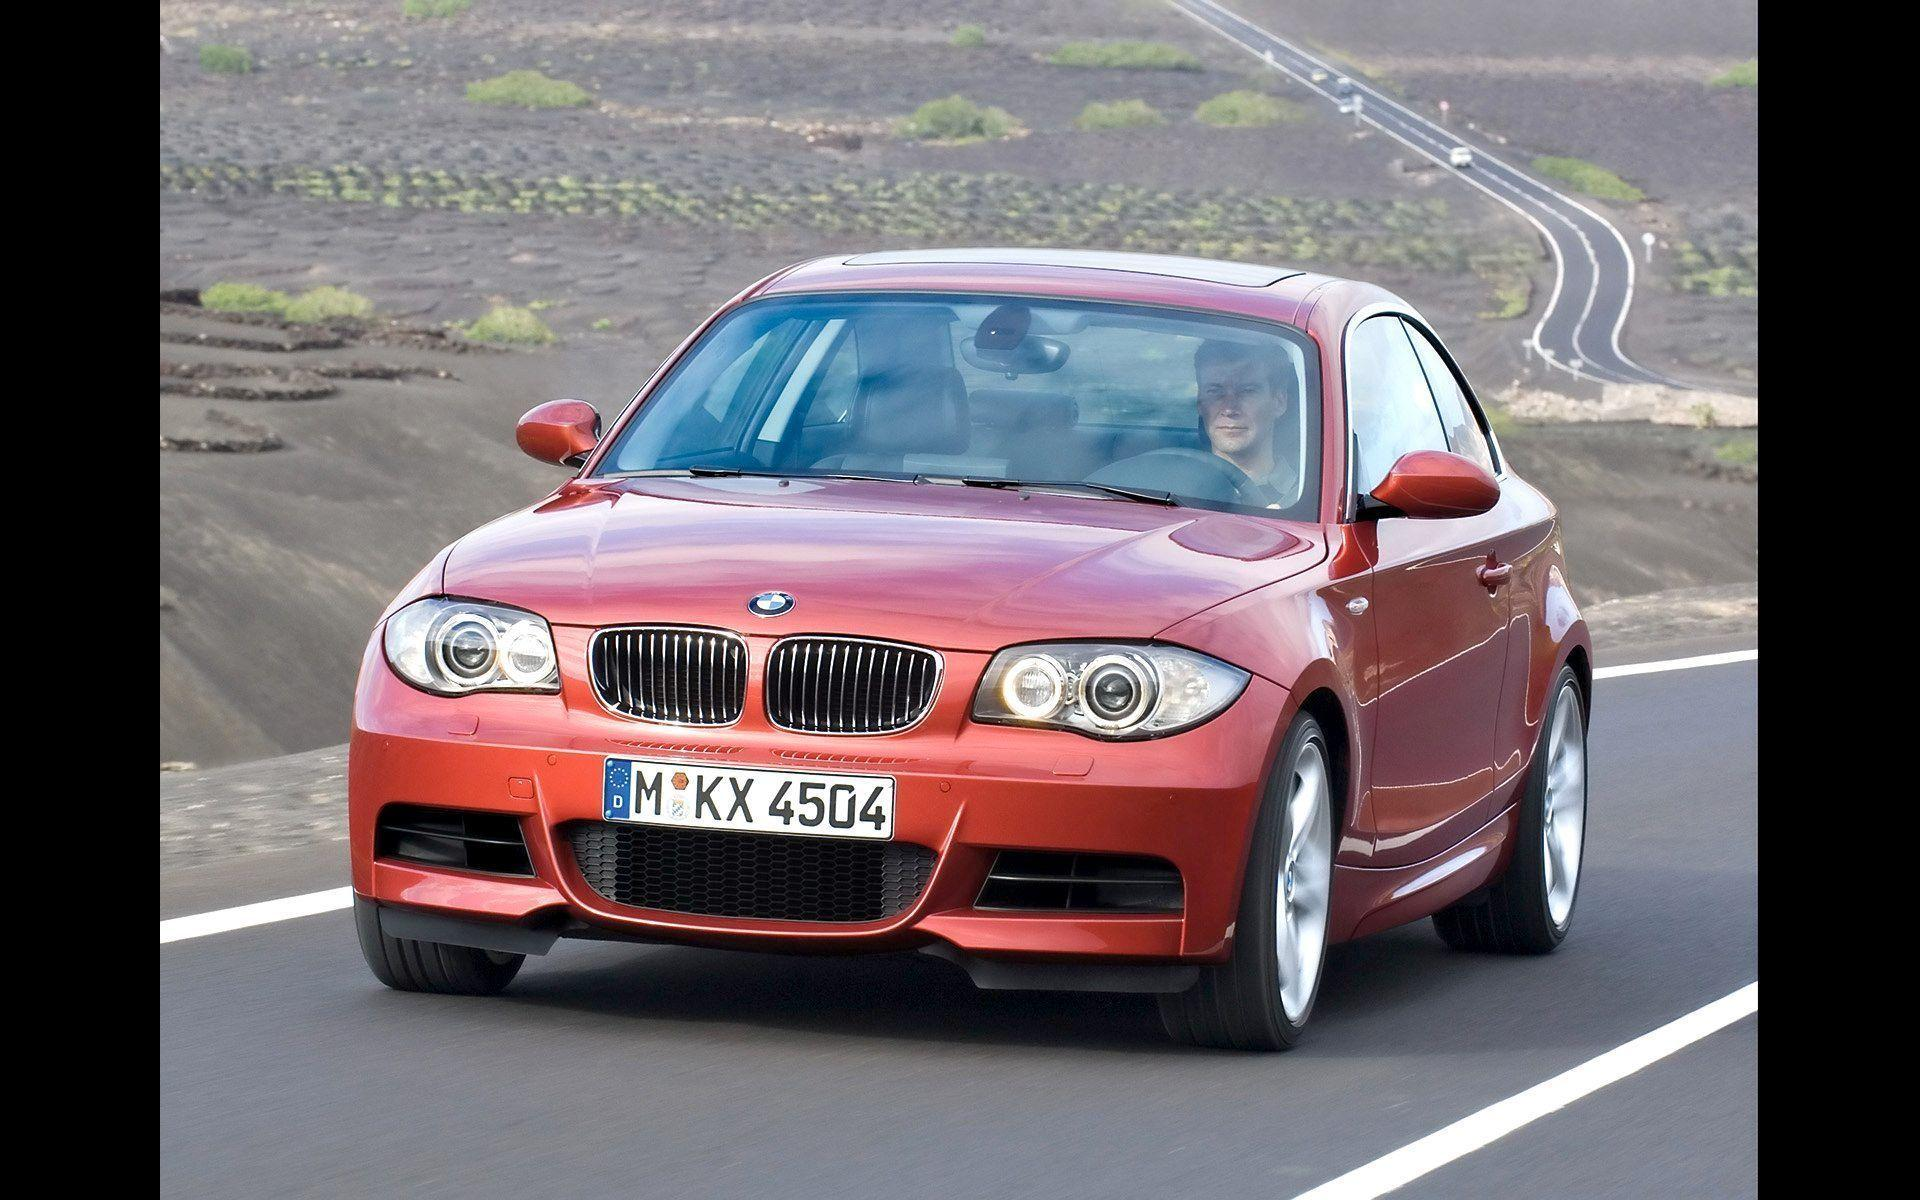 2008 BMW 1 Series Coupe Wallpaper 11 - 1920x1200